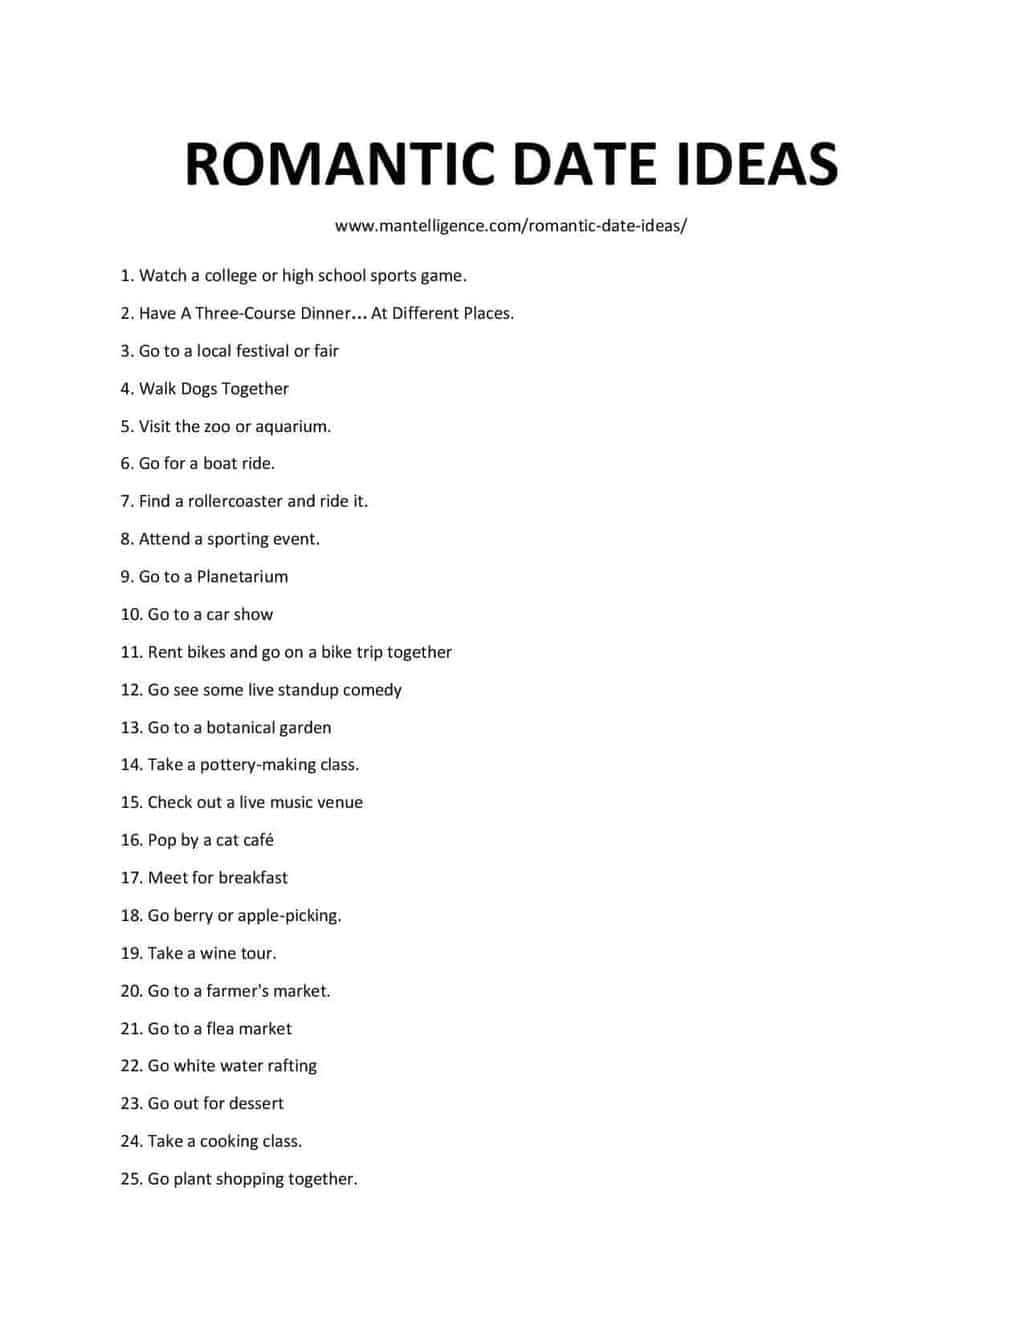 Downloadable and Printable List of Romantic Date Ideas